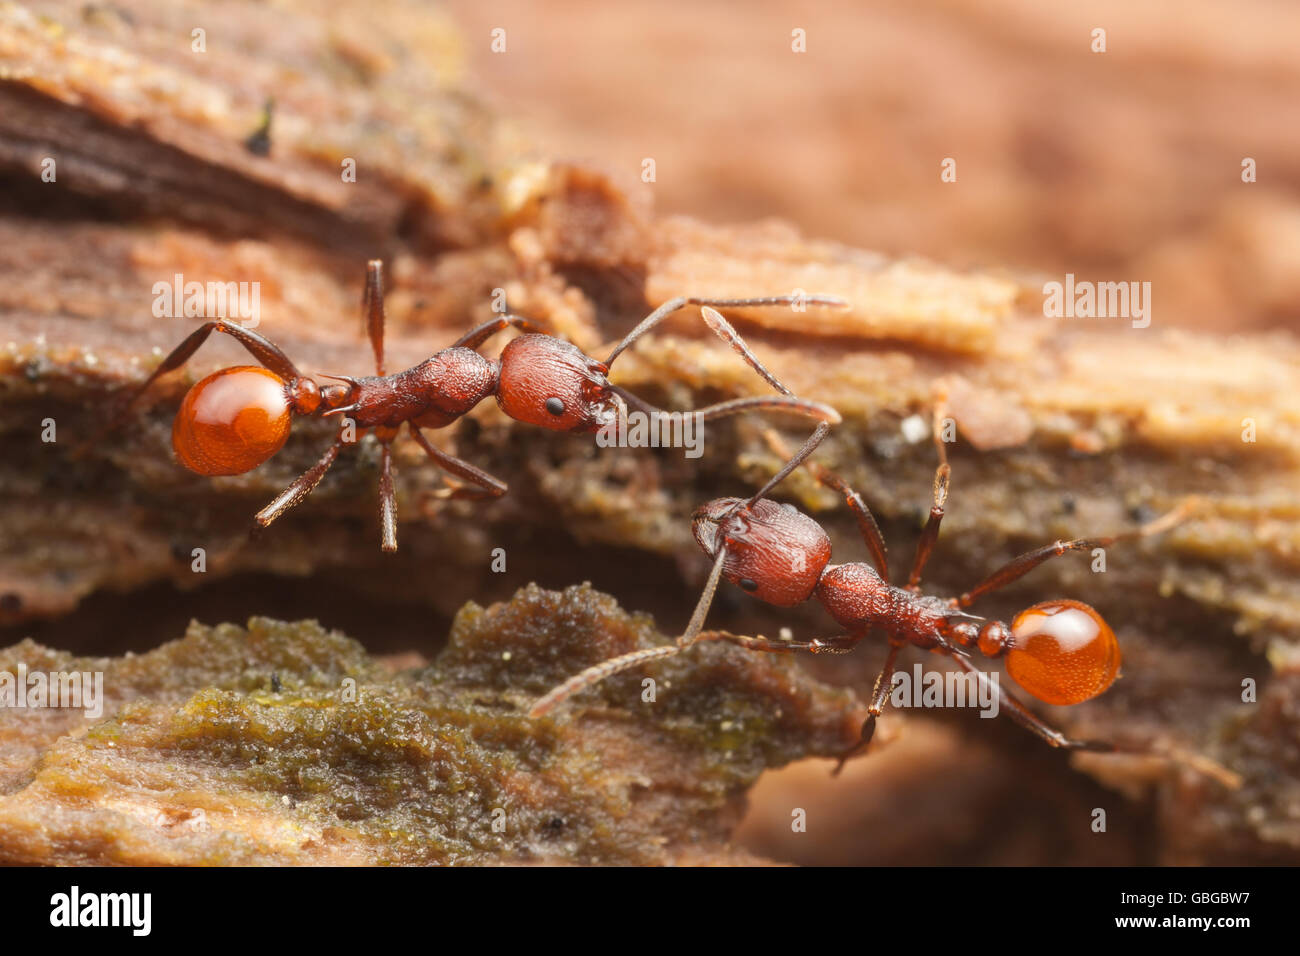 Two Spine-waisted Ant (Aphaenogaster tennesseensis) workers interact while on a foraging trip on a fallen dead tree - Stock Image